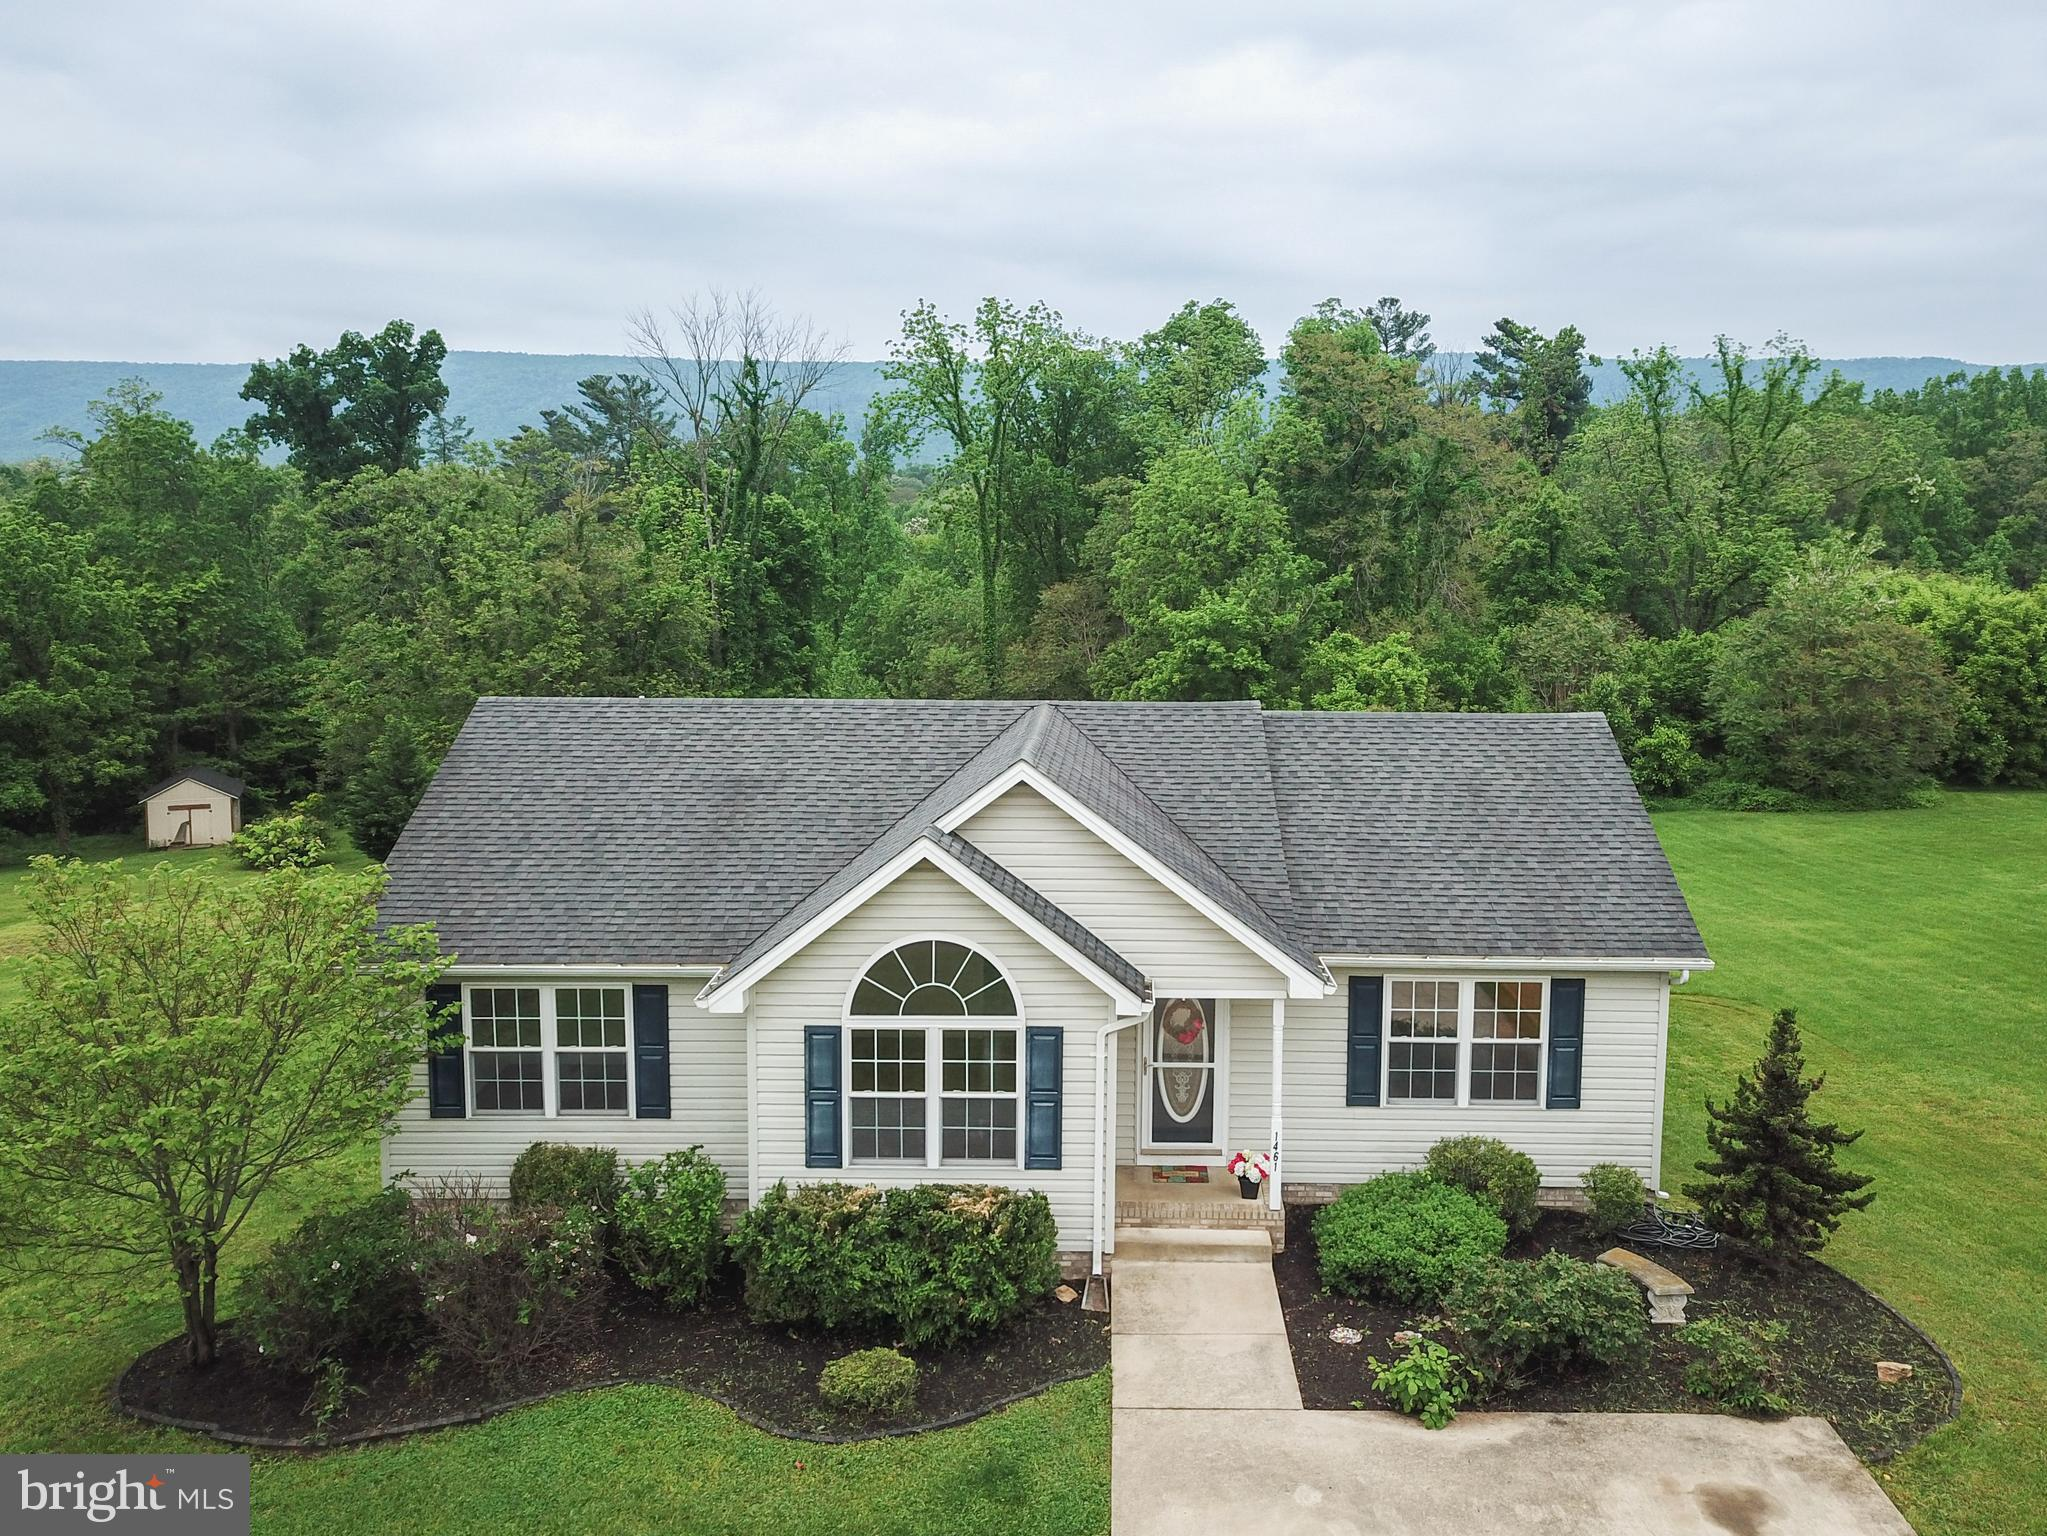 1461 COUNTRY BROOK ROAD, TOMS BROOK, VA 22660